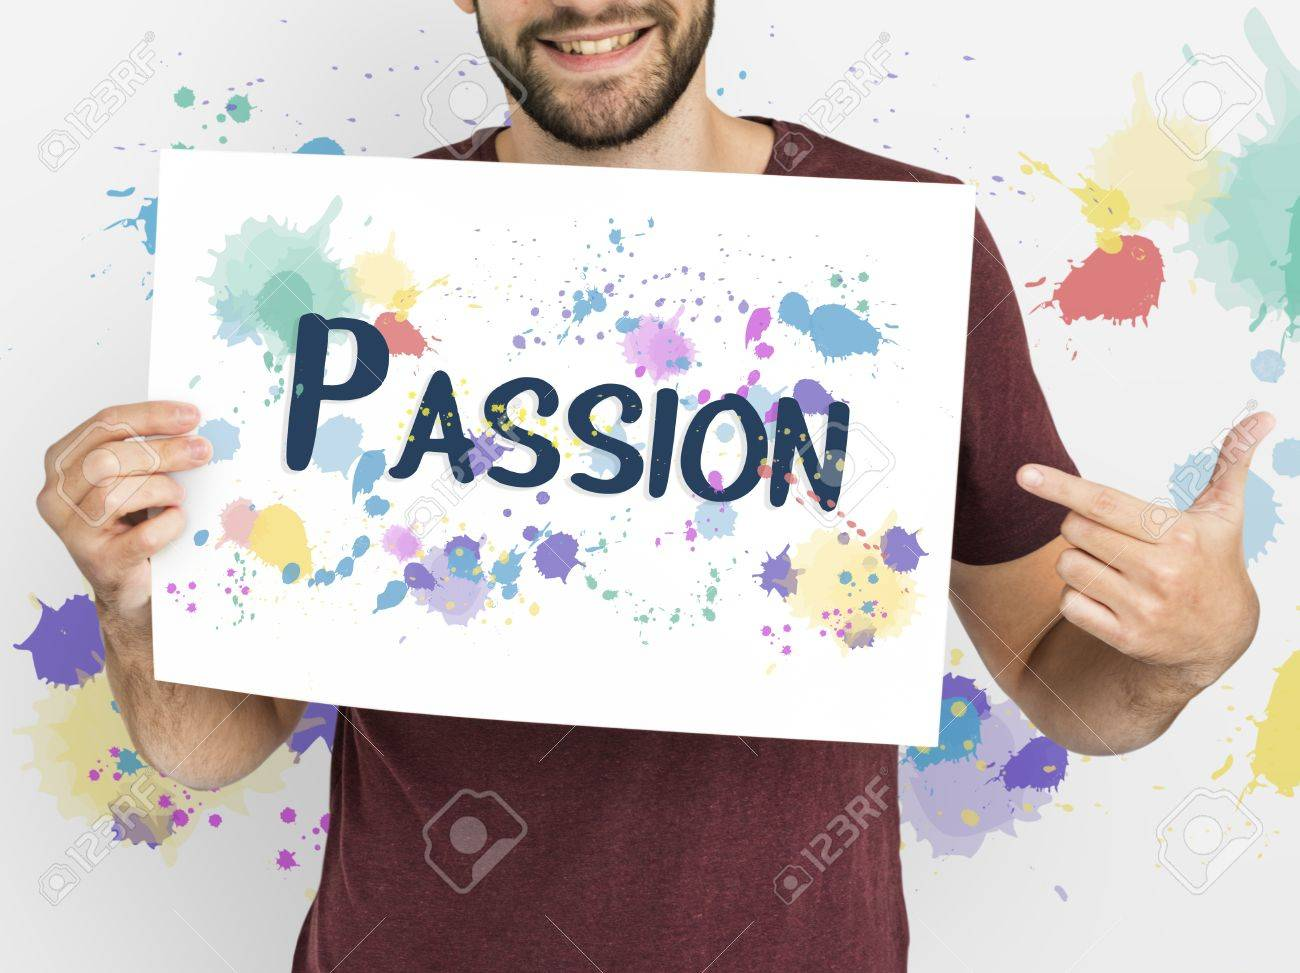 Passion Adore Affection Feelings Love Stock Photo - 81141702